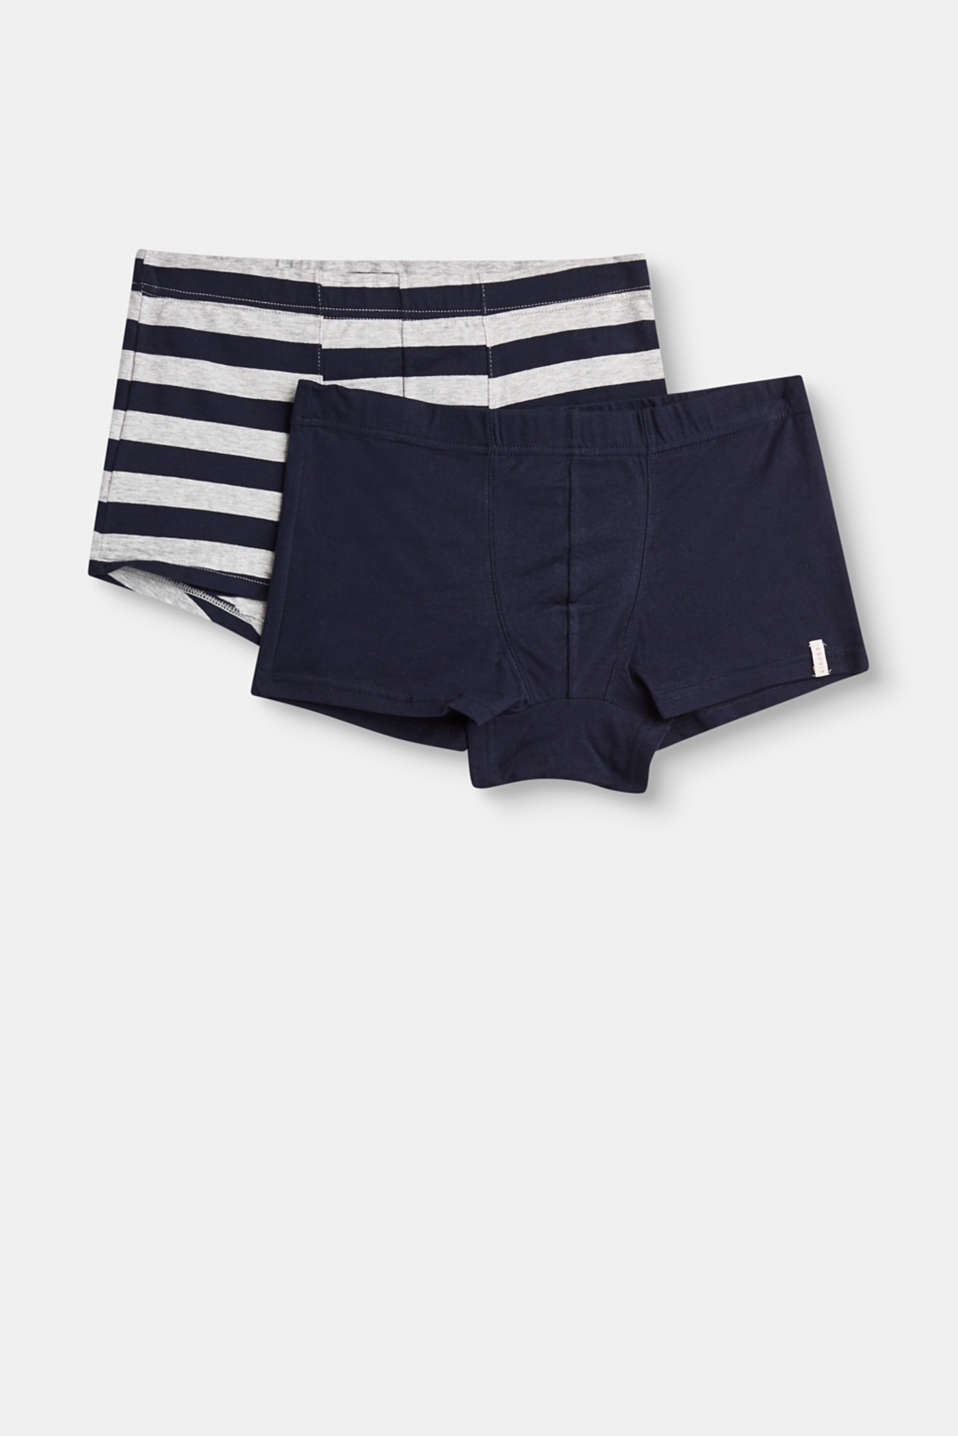 Esprit - pack of 2 shorts